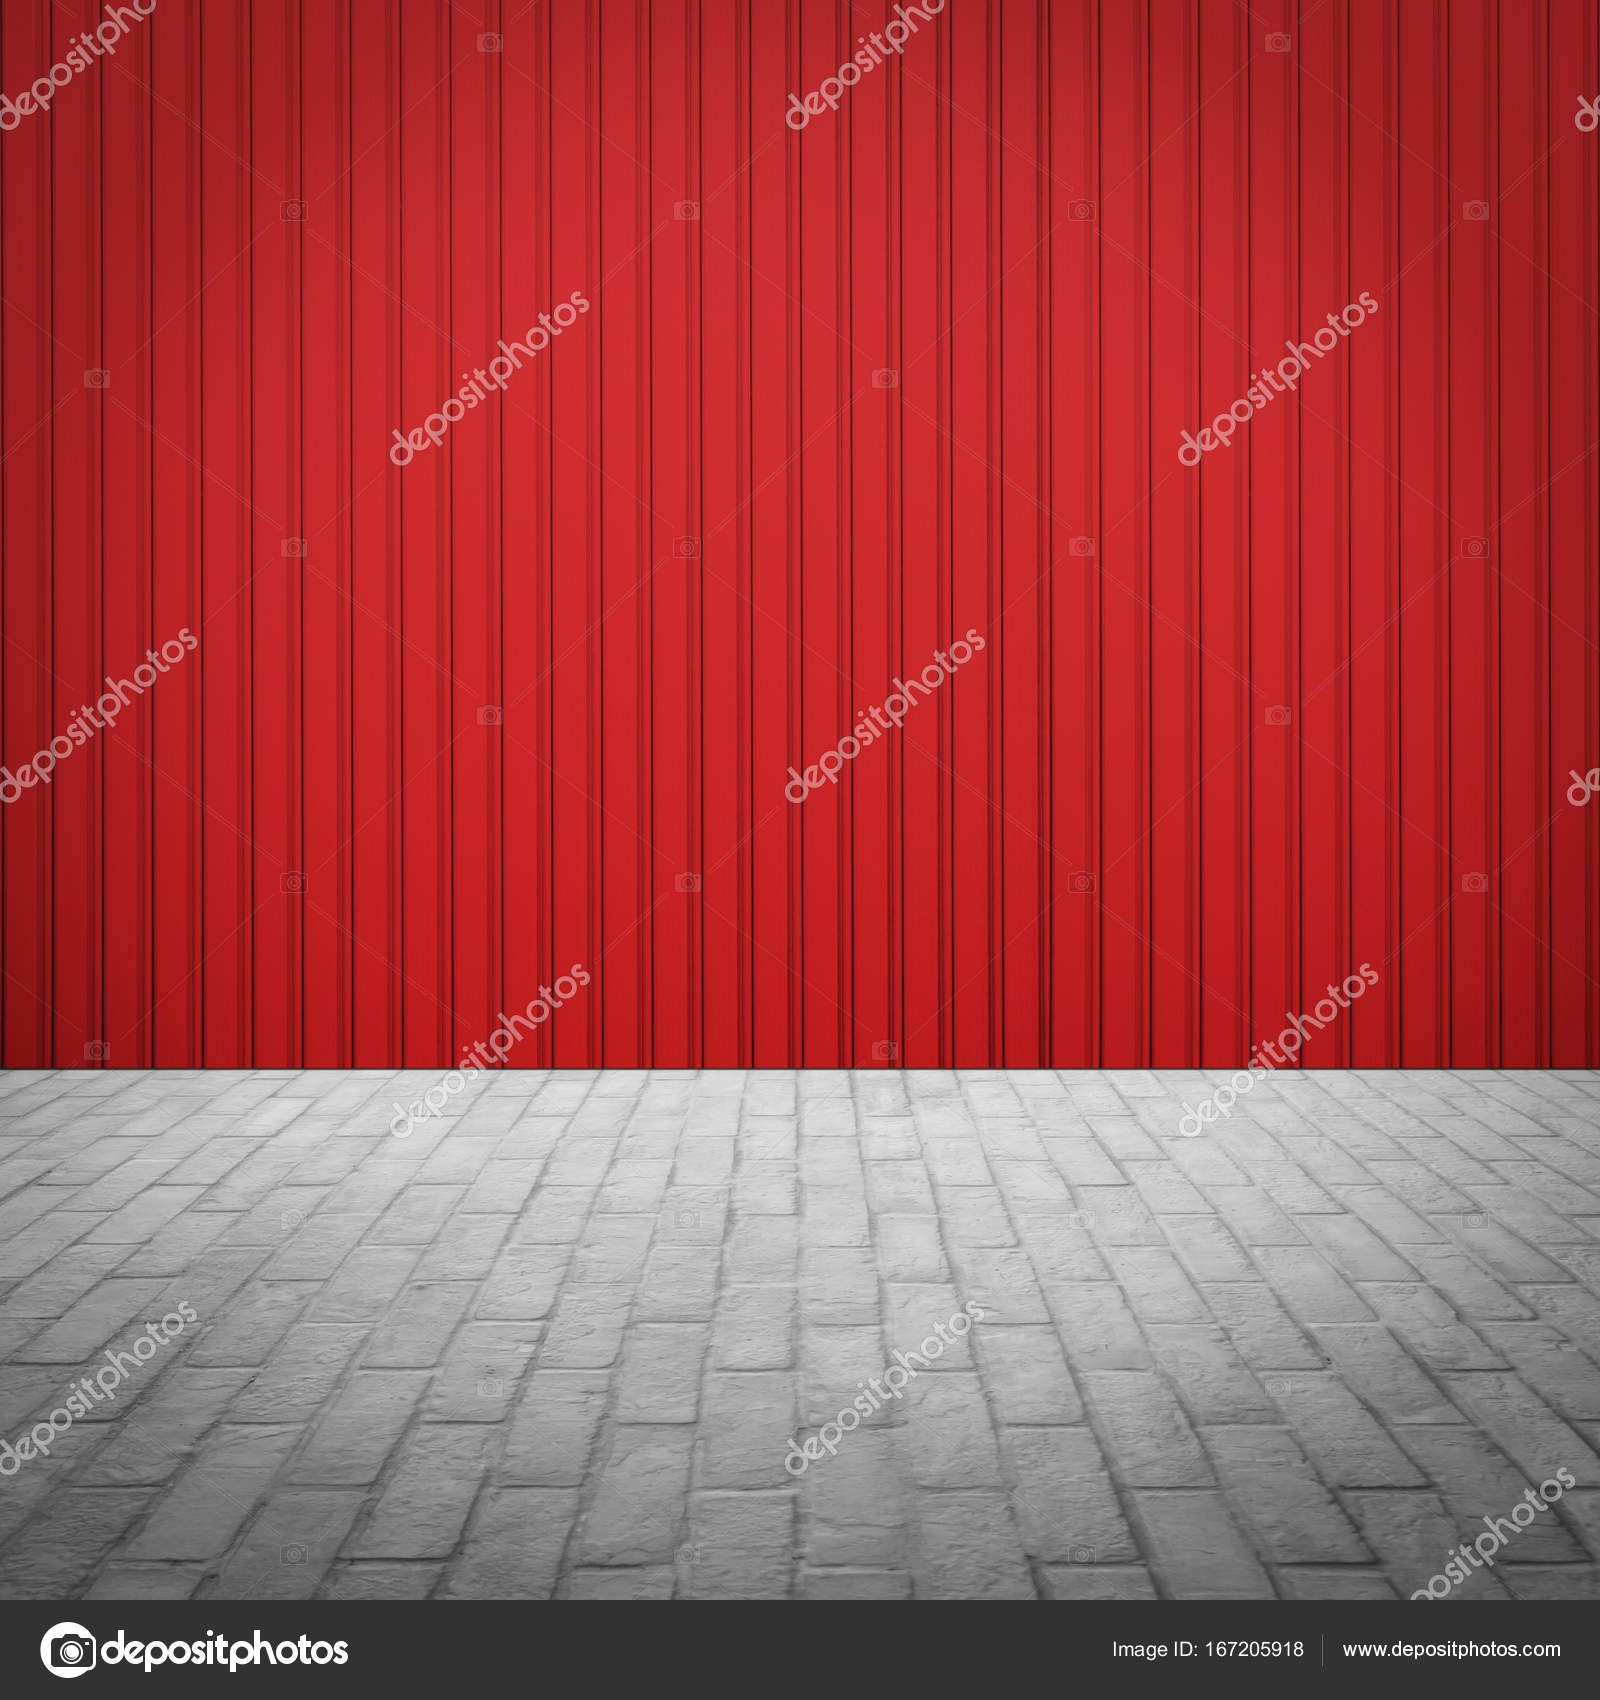 Outdoor stone block tile floor with red wall stock photo outdoor stone block tile floor with red wall stock photo dailygadgetfo Gallery